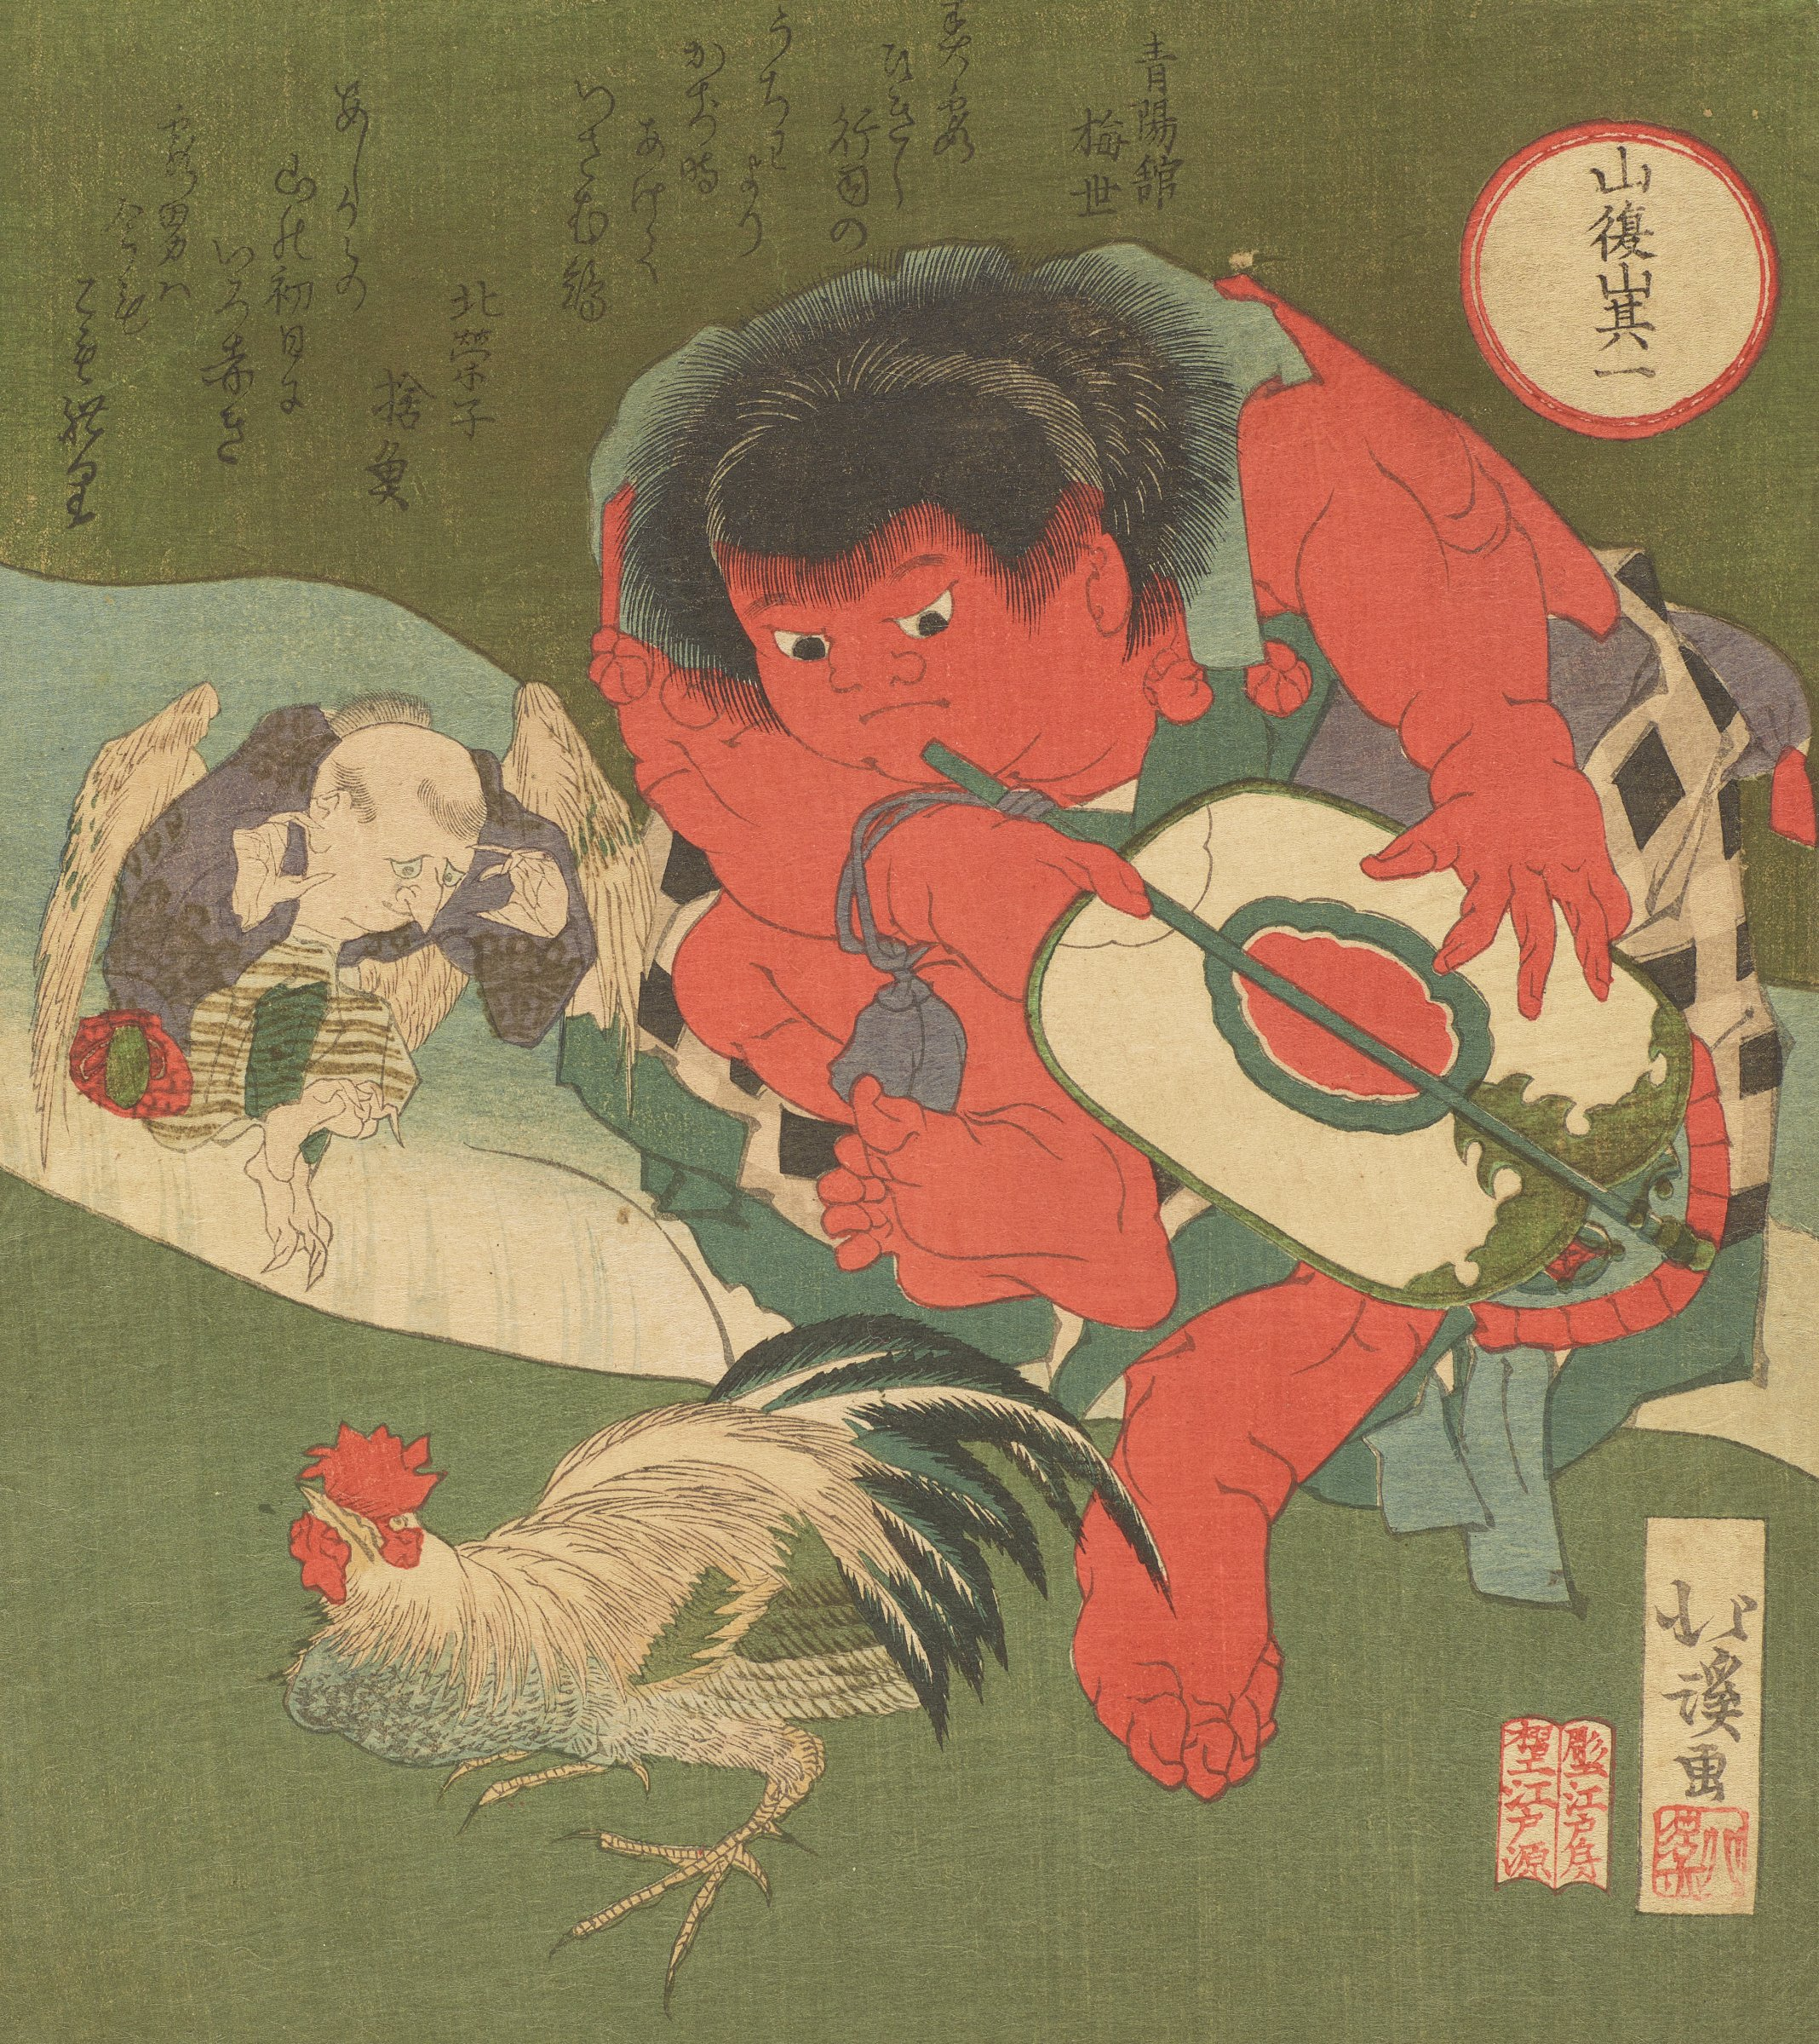 Surimono print of the folk figure Kintaro refereeing a fight with a rooster and a Tengu, perhaps for the Year of the Rooster.